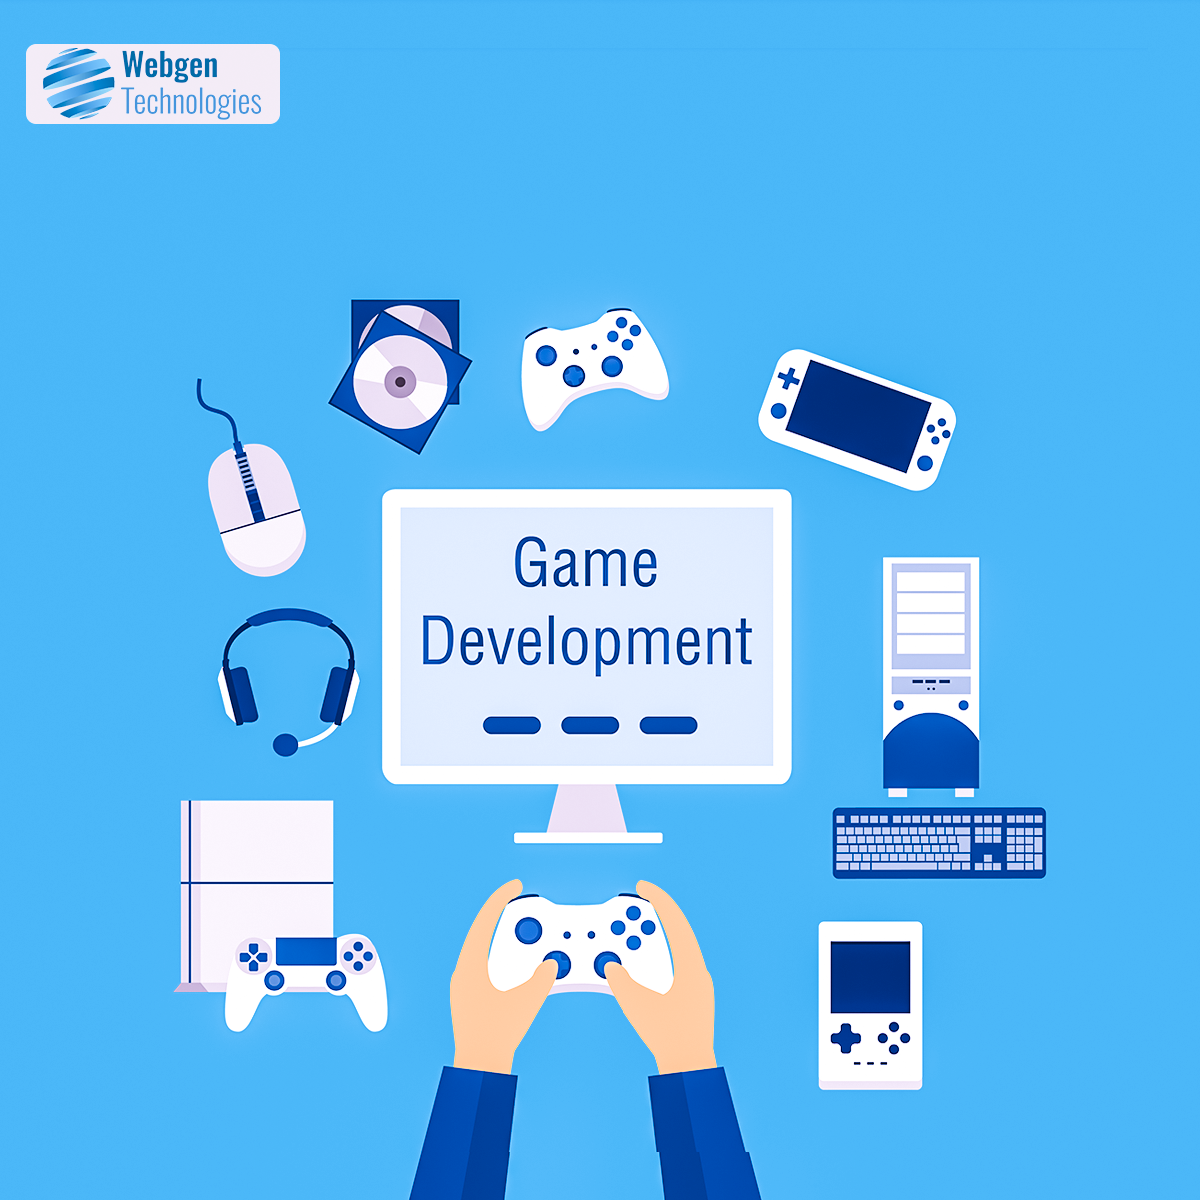 Building a game in this era requires much more than mere a